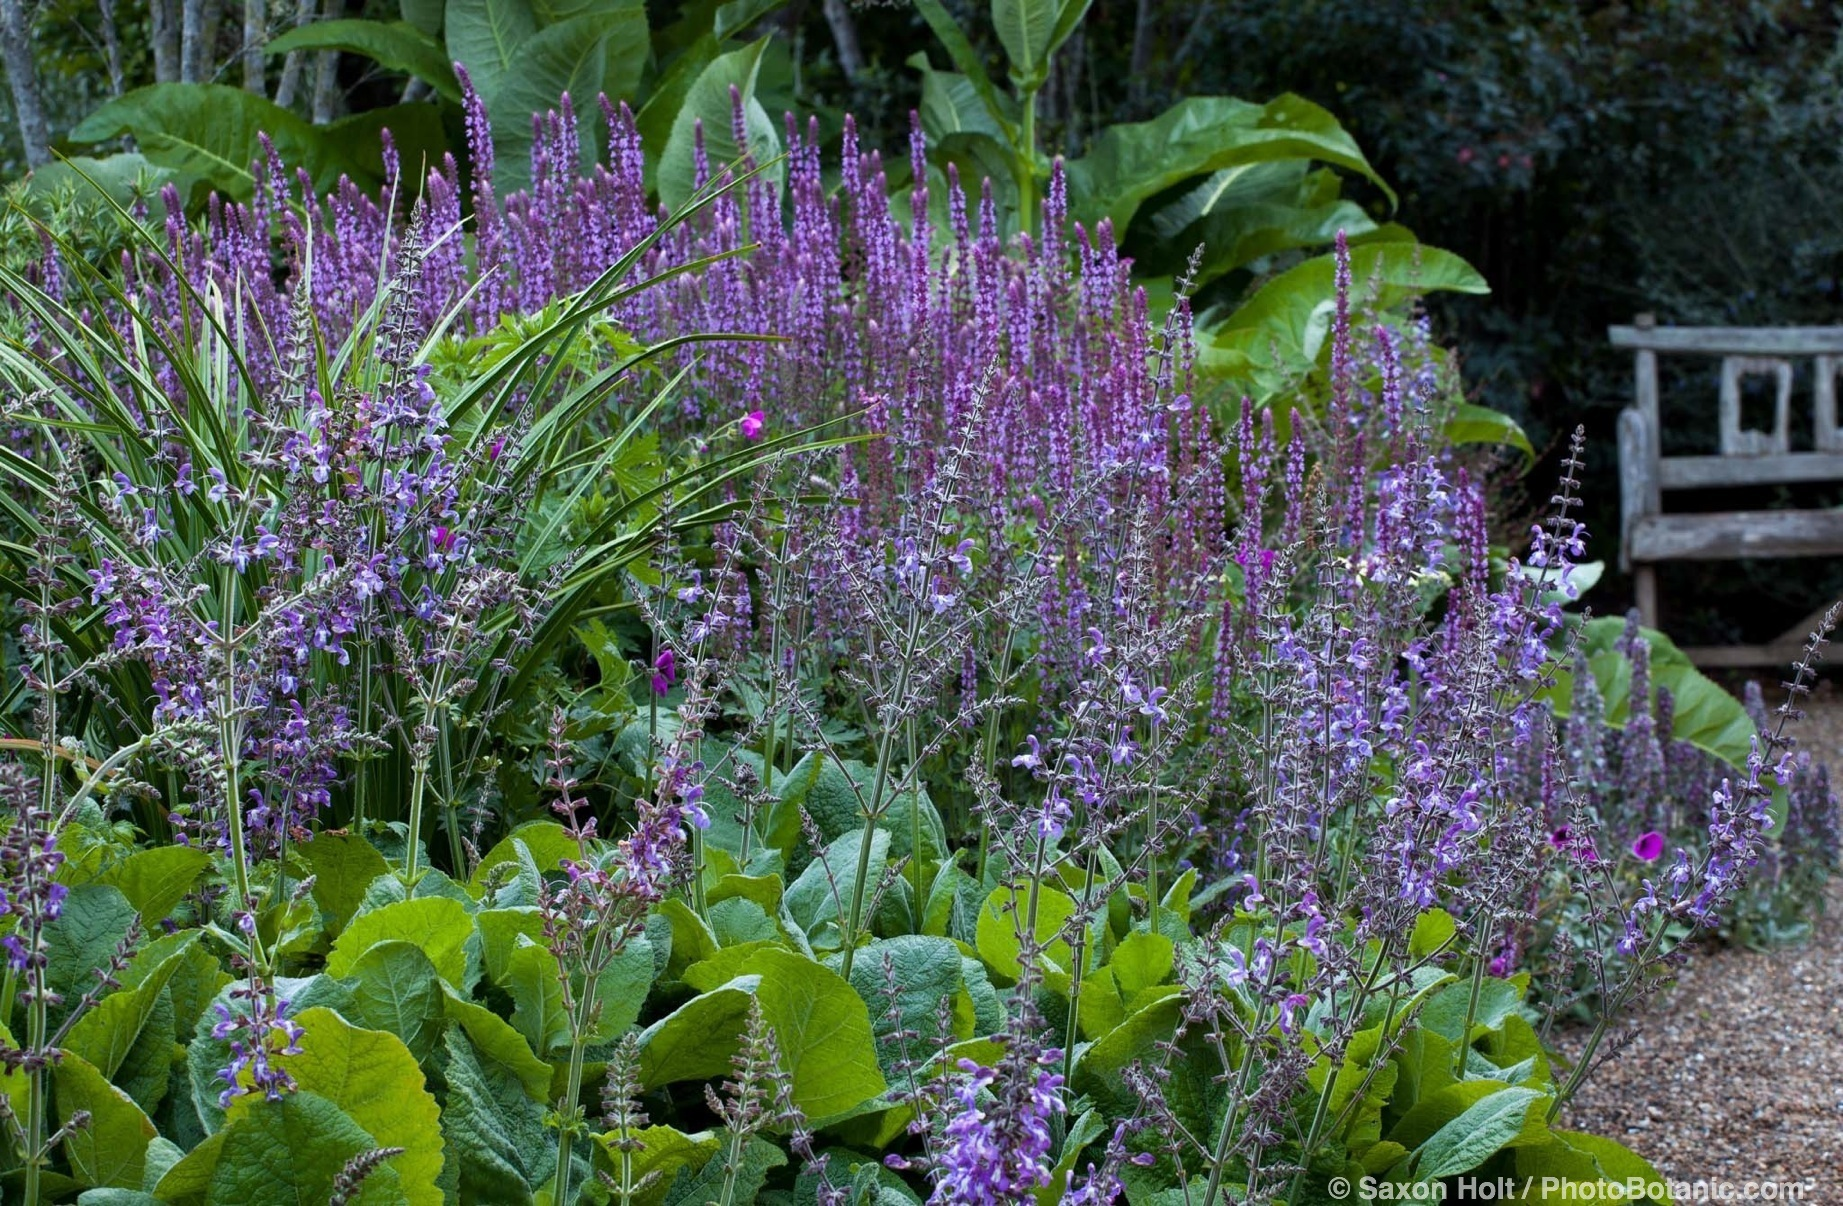 Blue flowering perennials in border with strong foliage plants; flowering sages - Salvia forsskaolii, S. nemerosa 'Amethyst', foliage of Knifophia 'Yellow Cheer' in border and Inula beyond; Gary Ratway garden